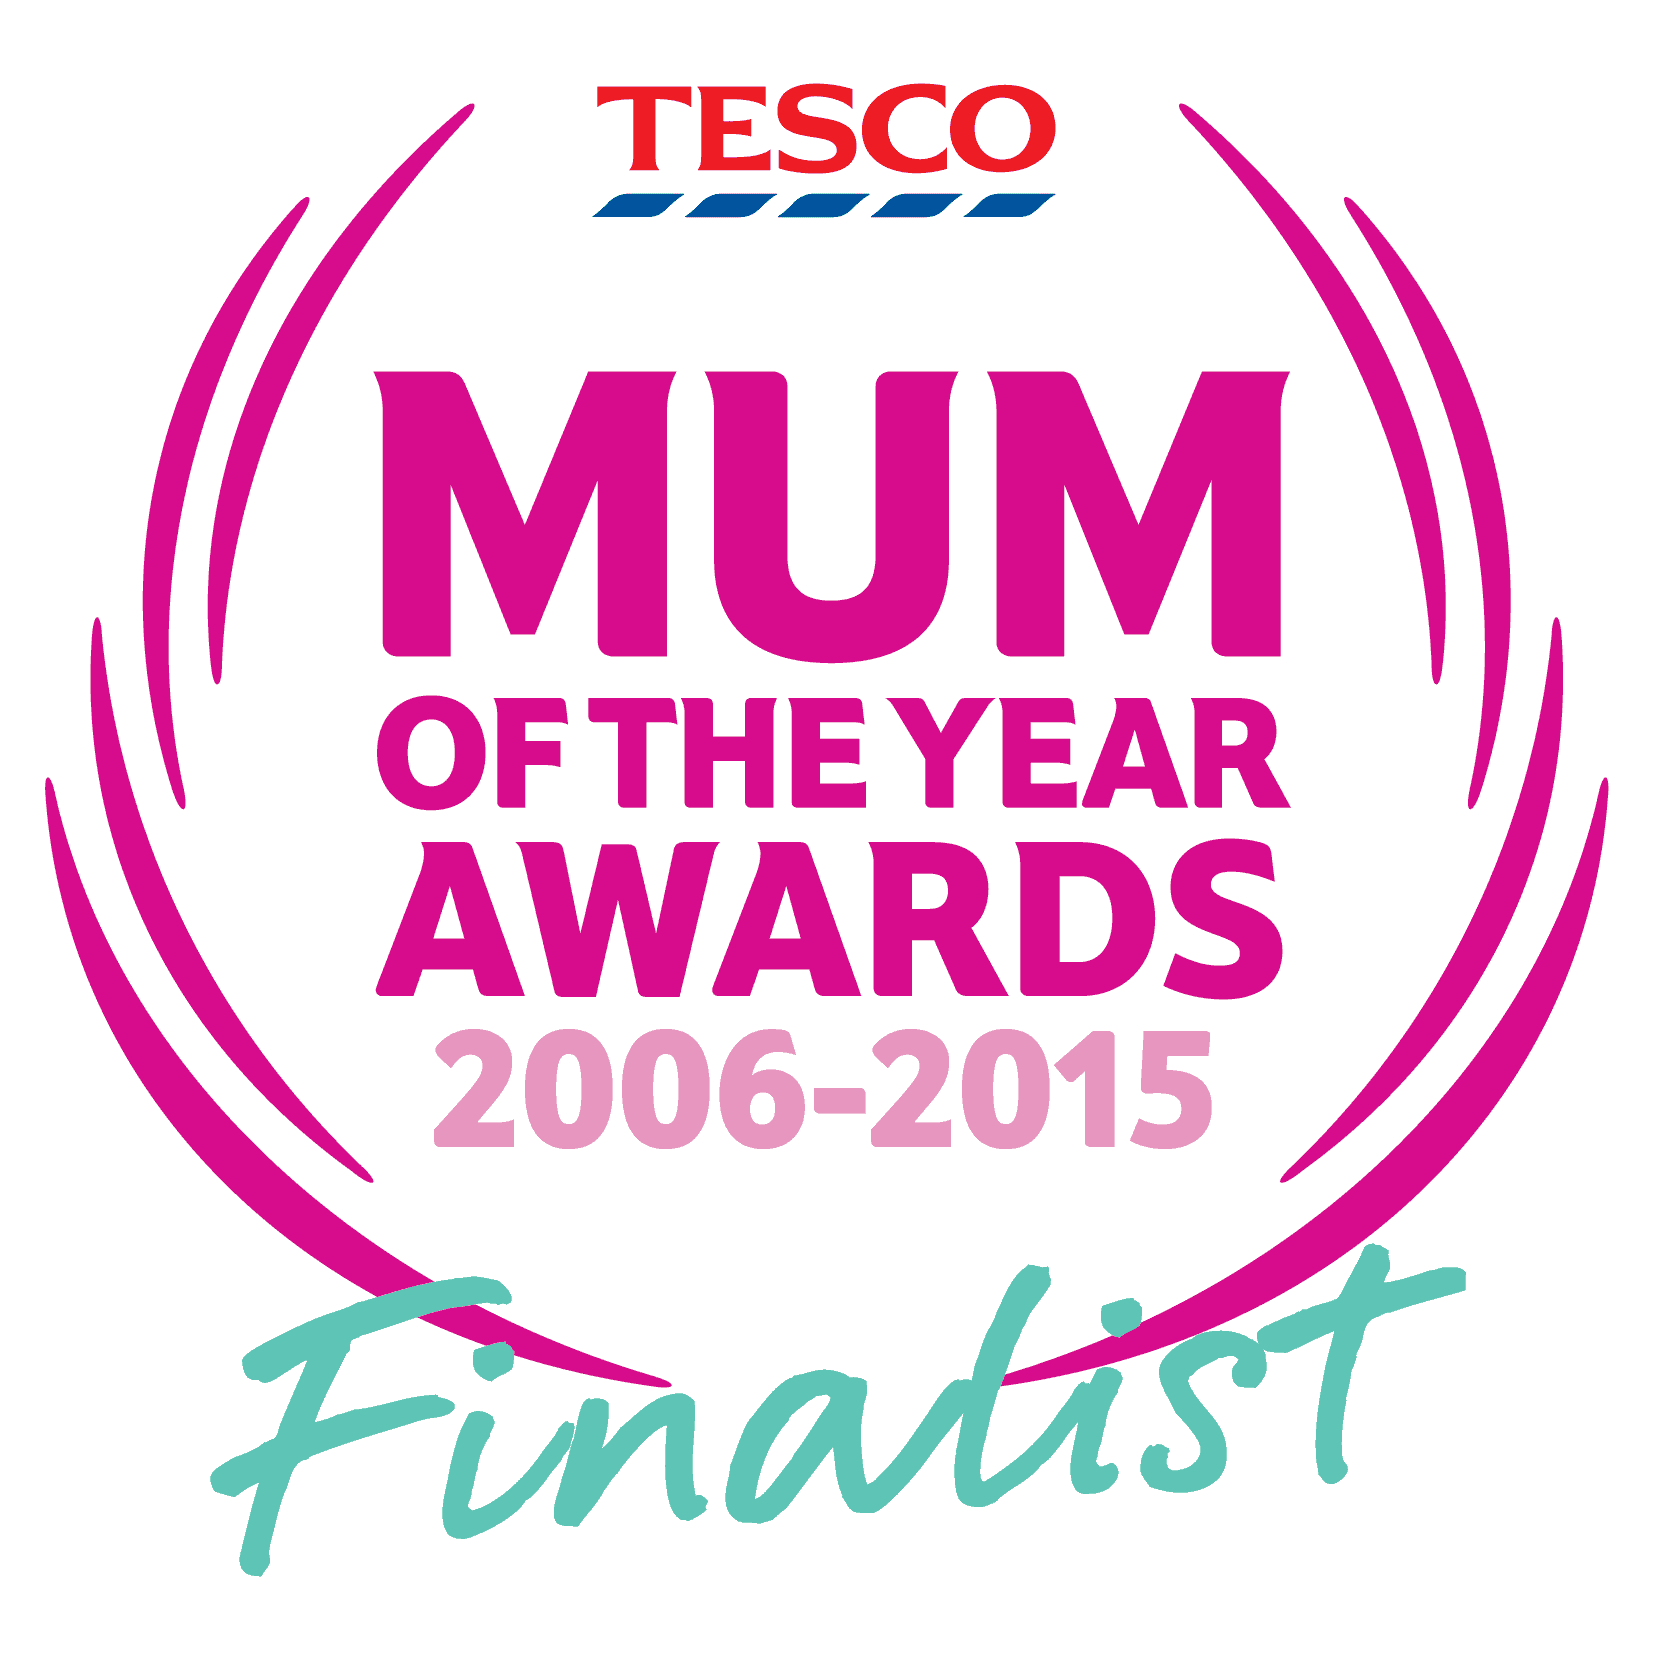 Tesco Mum of the Year awards 2015 Finalist